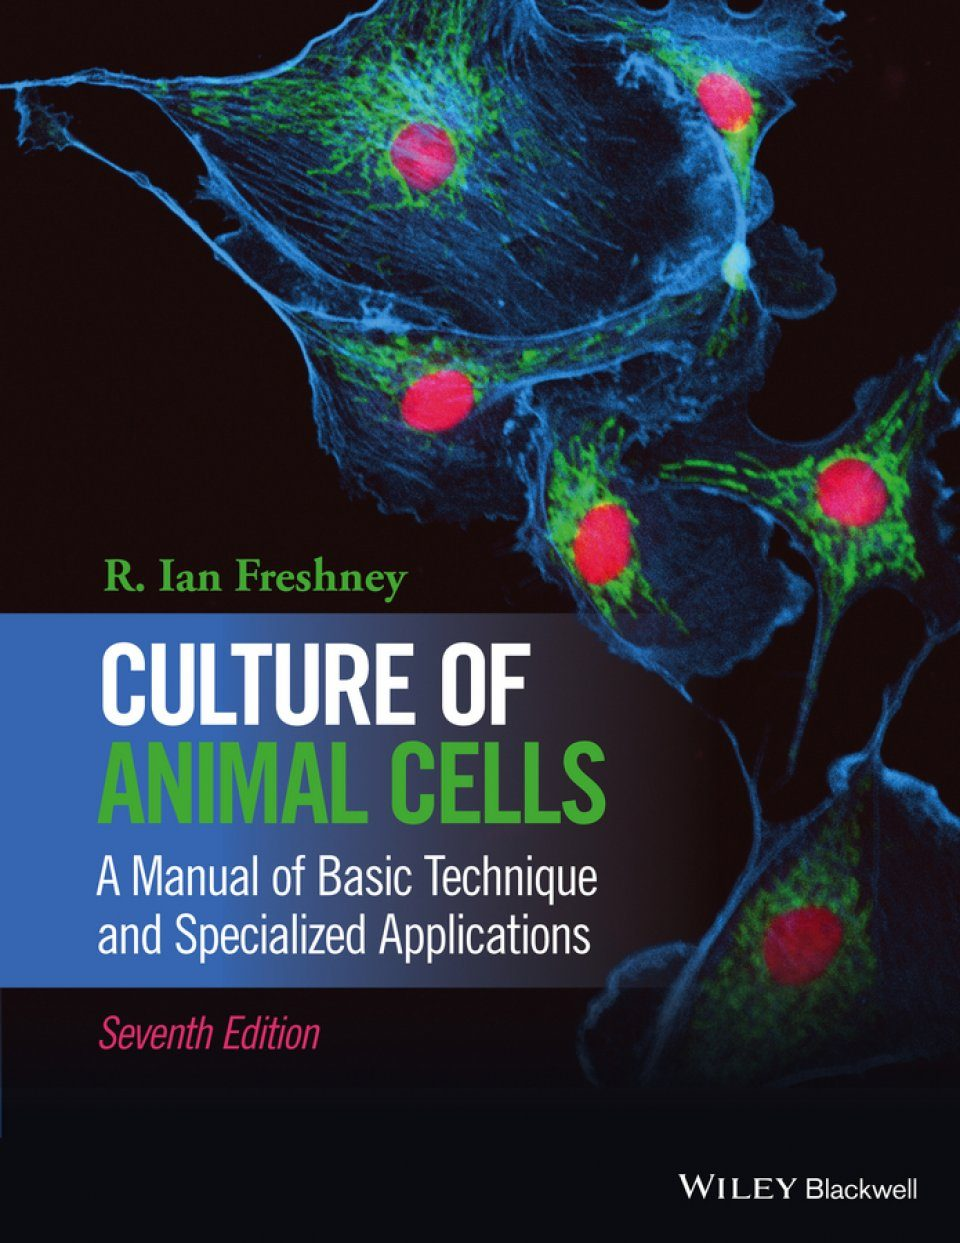 Culture of Animal Cells